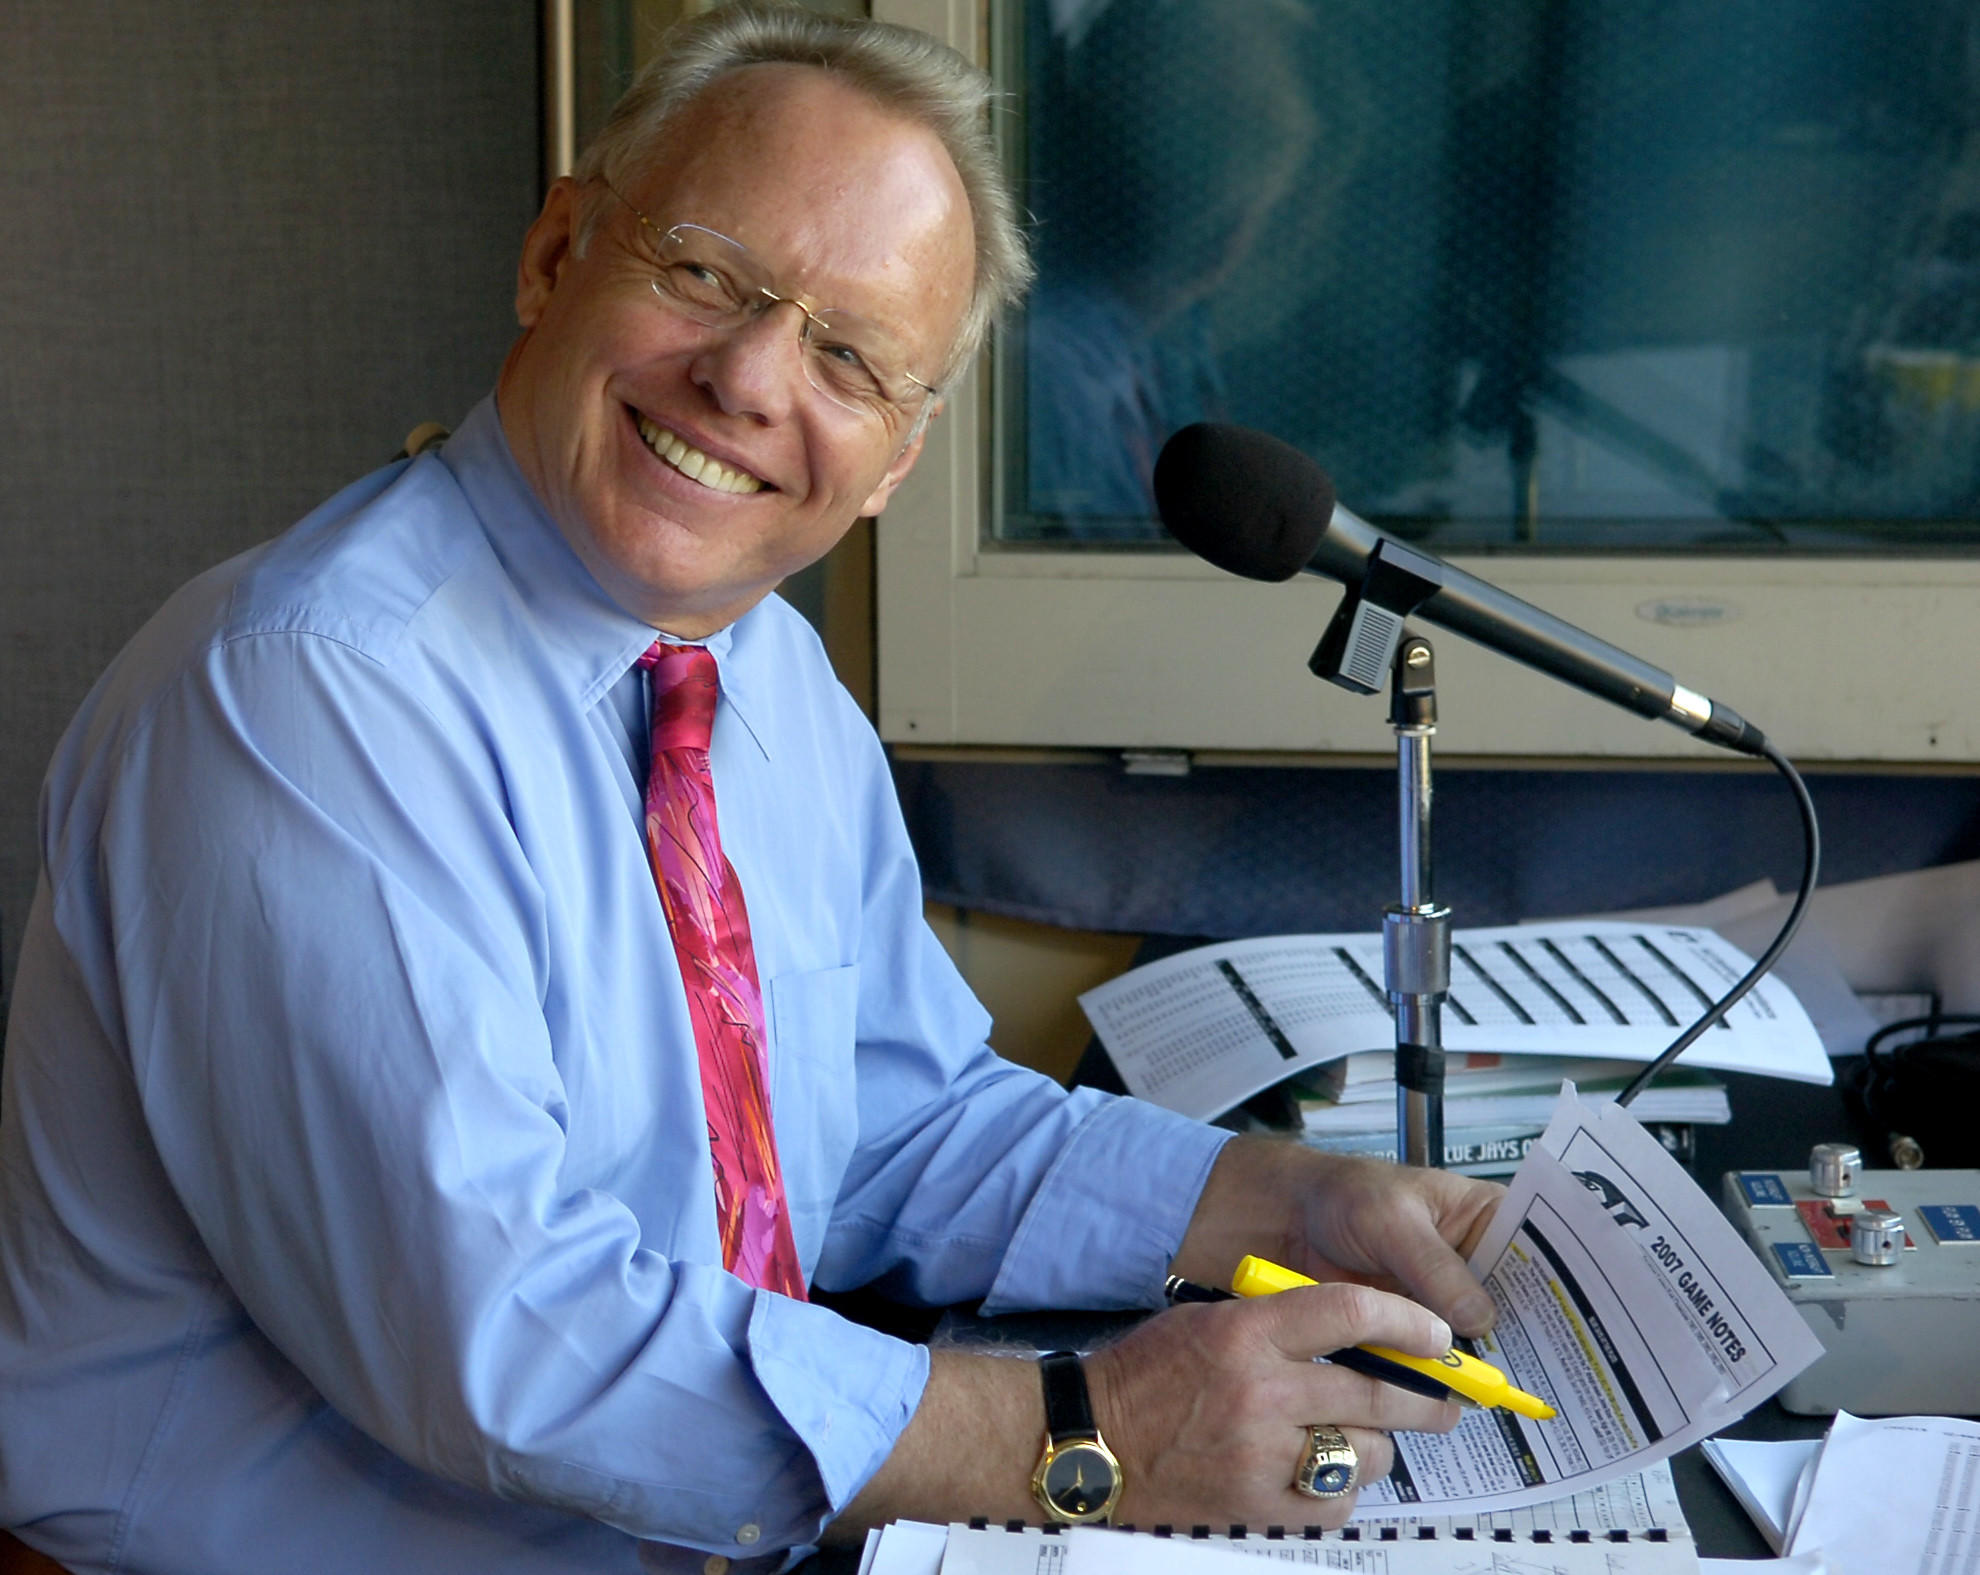 Gary Thorne and the O's broadcasters on MASN earned high marks from viewers.